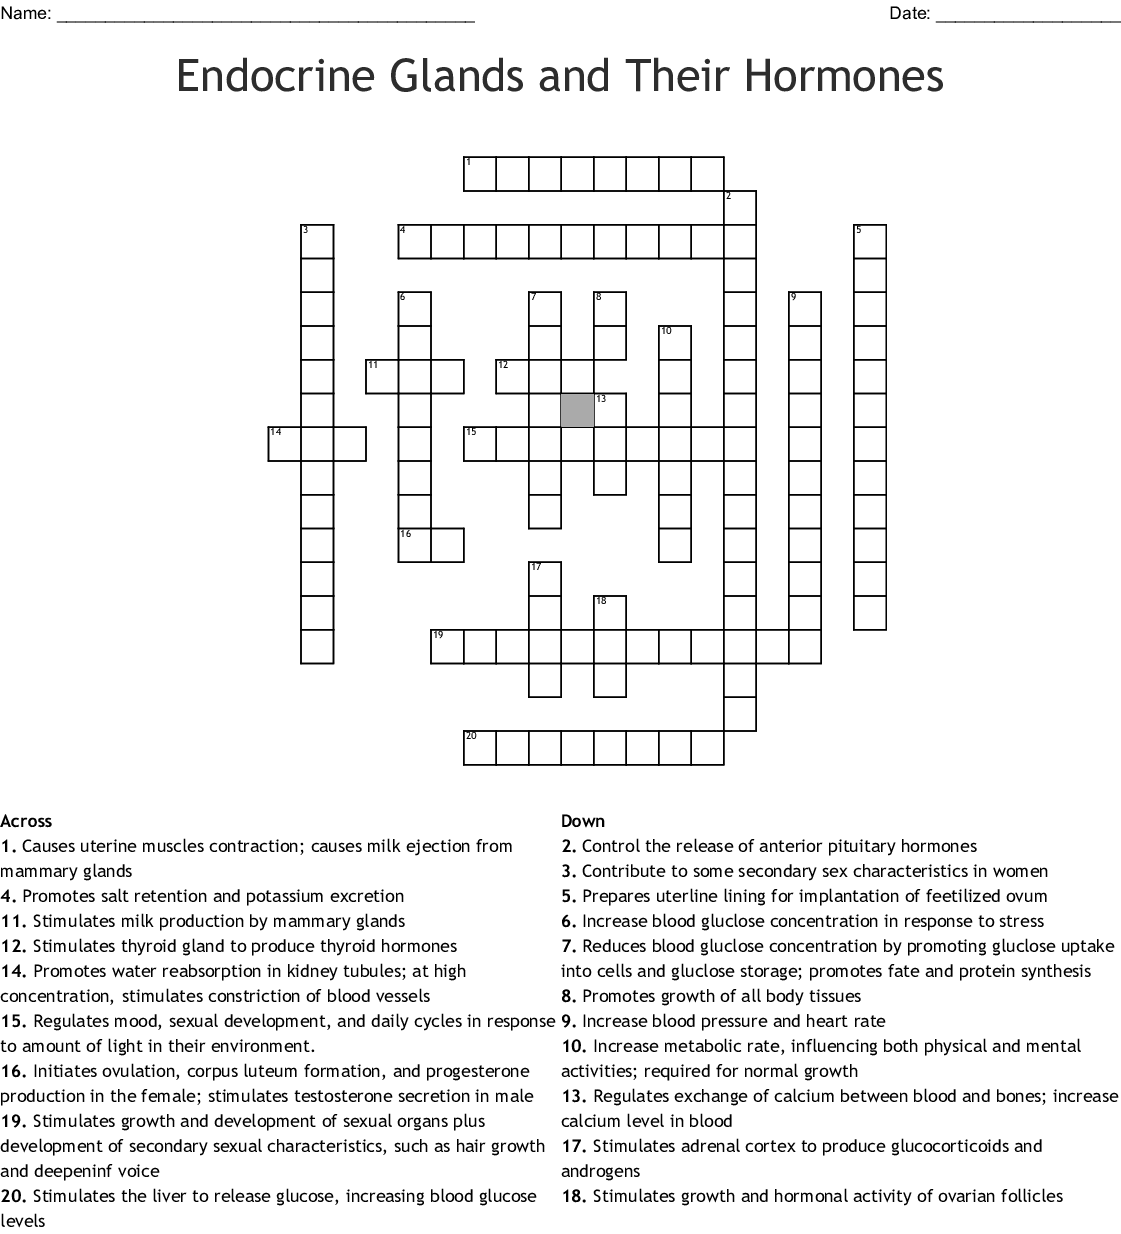 The Endocrine Glands and Their Hormone Crossword - WordMint